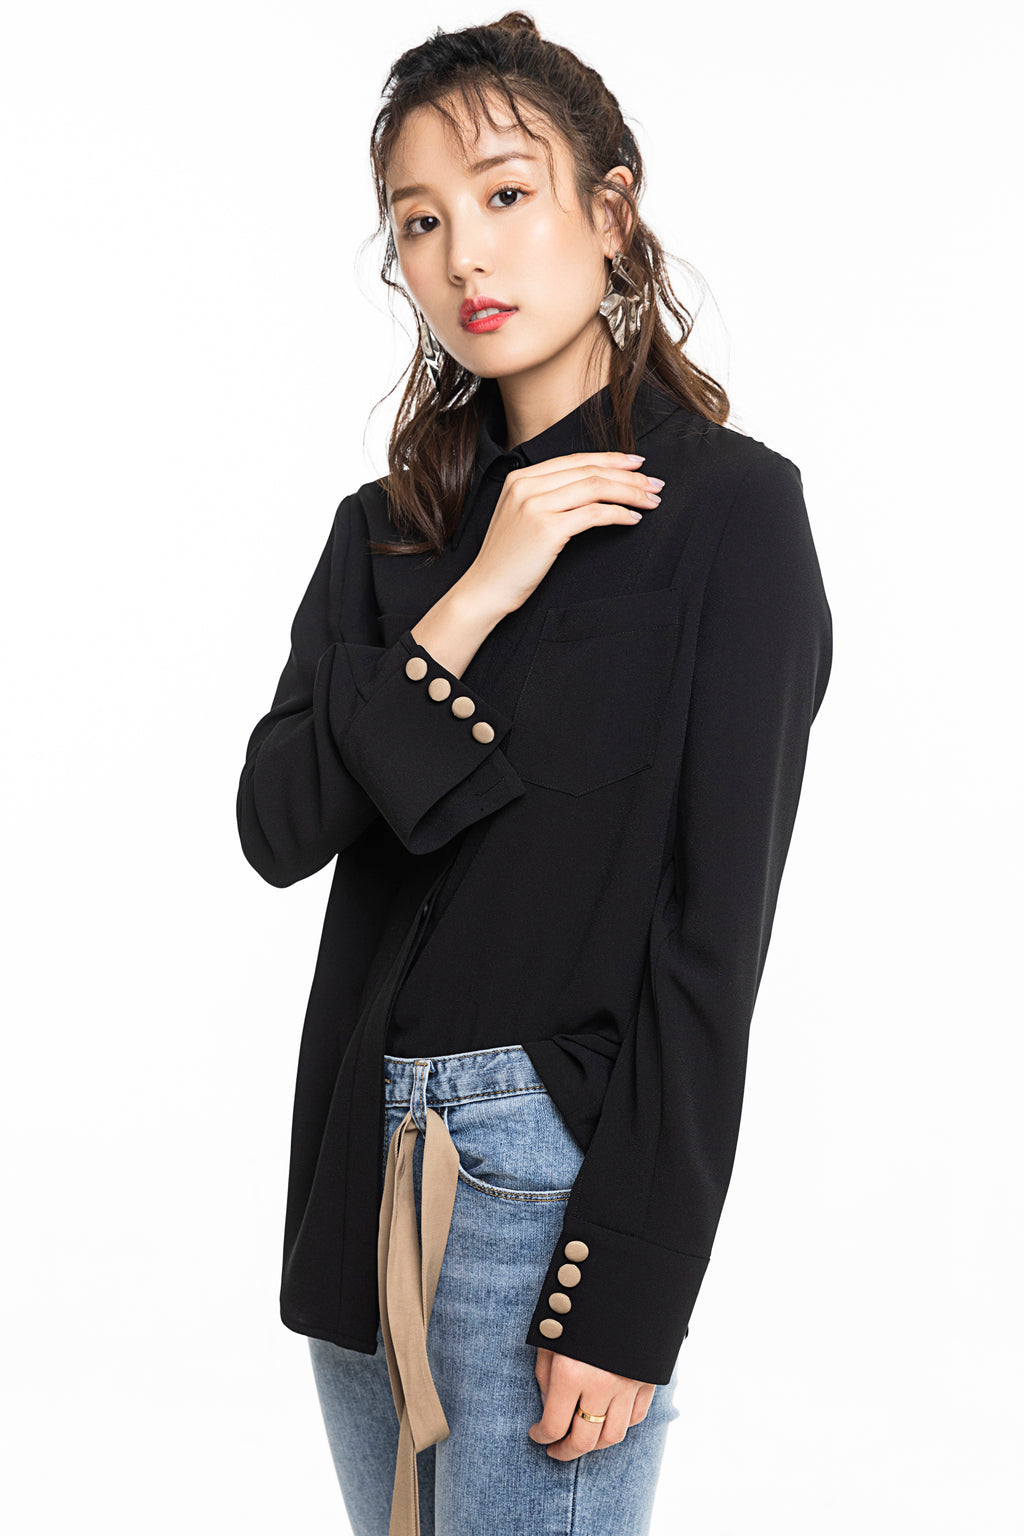 Khaki Streamer Black Shirt